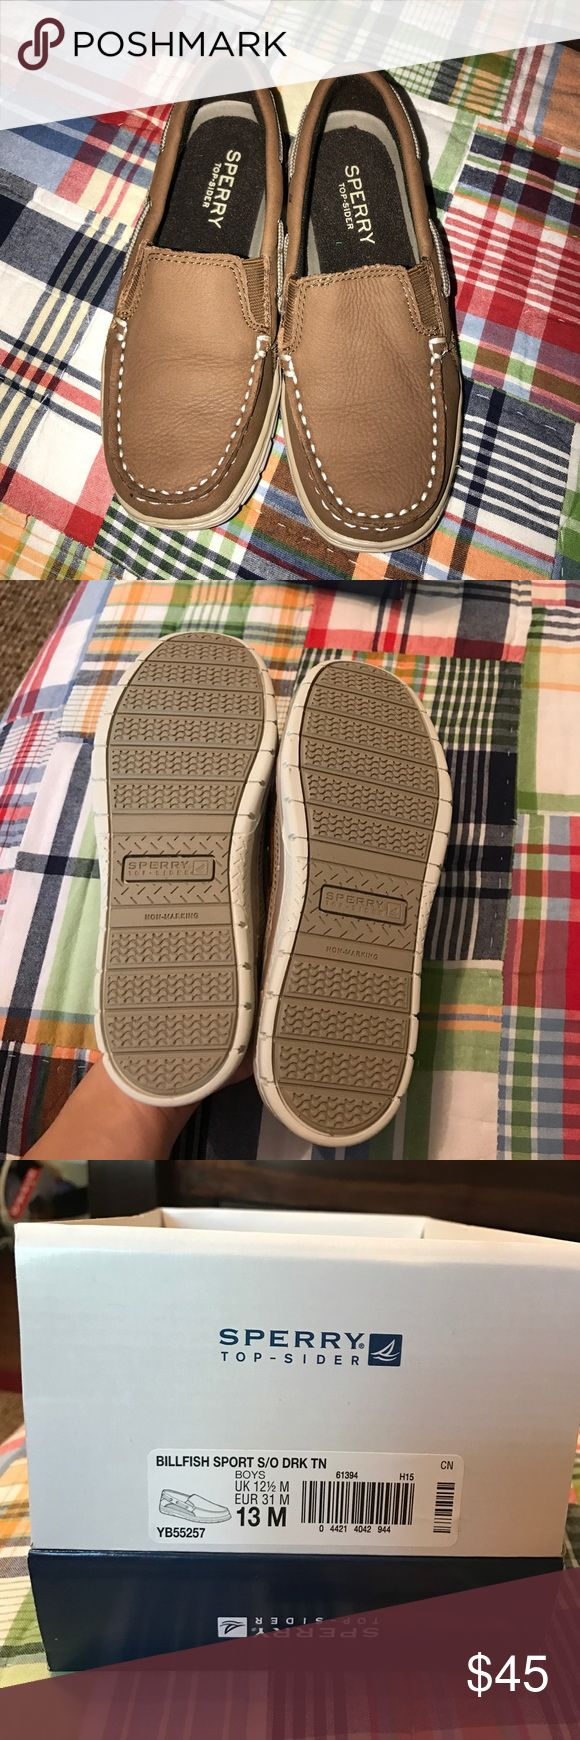 Sperry Billfish Sport Shoes Boys Sperry Billfish Shoes. Brand new, never worn. My son outgrew them before he could wear them! So cute and perfect for spring and summer. Can be worn dressy or casual. Can ship in the box. Sperry Shoes